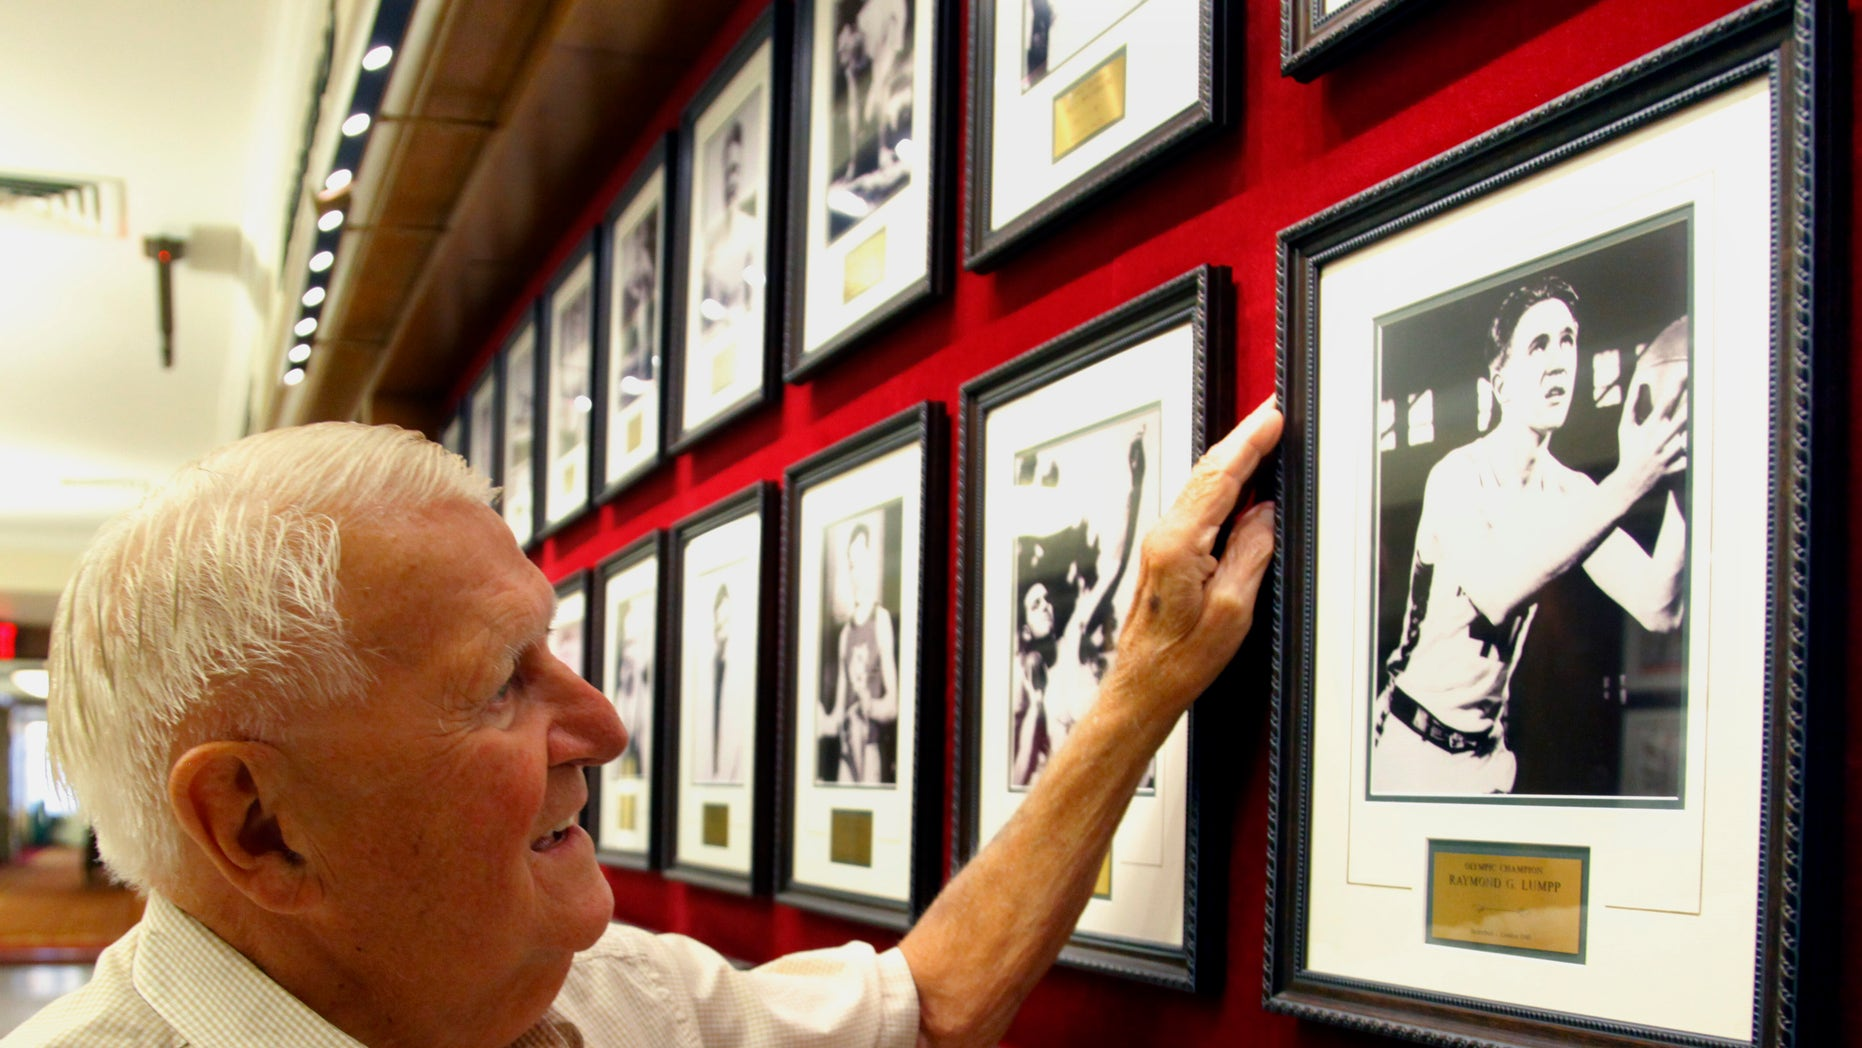 FILE - This Sept. 2, 2011 file photo shows Ray Lumpp, basketball gold medalist for the U.S. at the 1948 Olympics in London, pointing out his photo among those reserved for Olympic champions, at the New York Athletic Club. When the U.S. men's basketball team play Argentina on Friday night, the 89-year-old Lumpp promises to cheer louder than anyone else. (AP Photo/Bebeto Matthews, File)